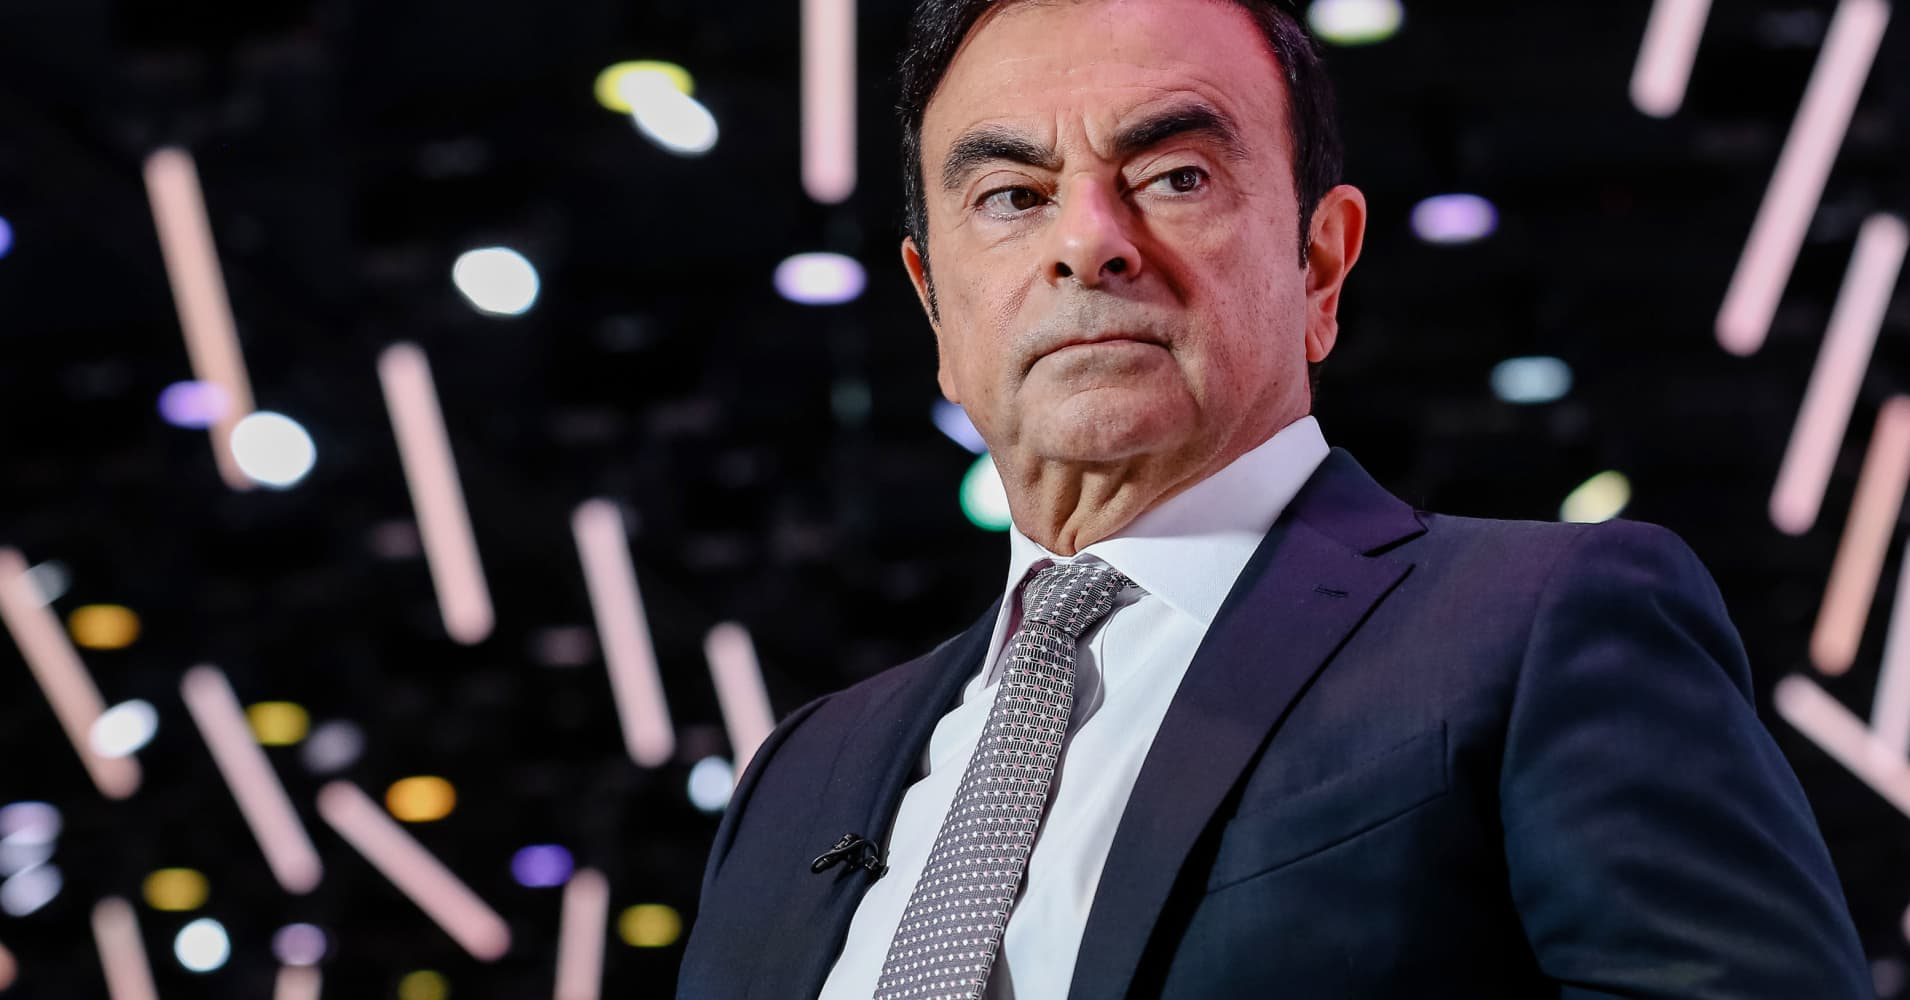 Arrest of ousted Nissan Chairman Ghosn invites conspiracy theories